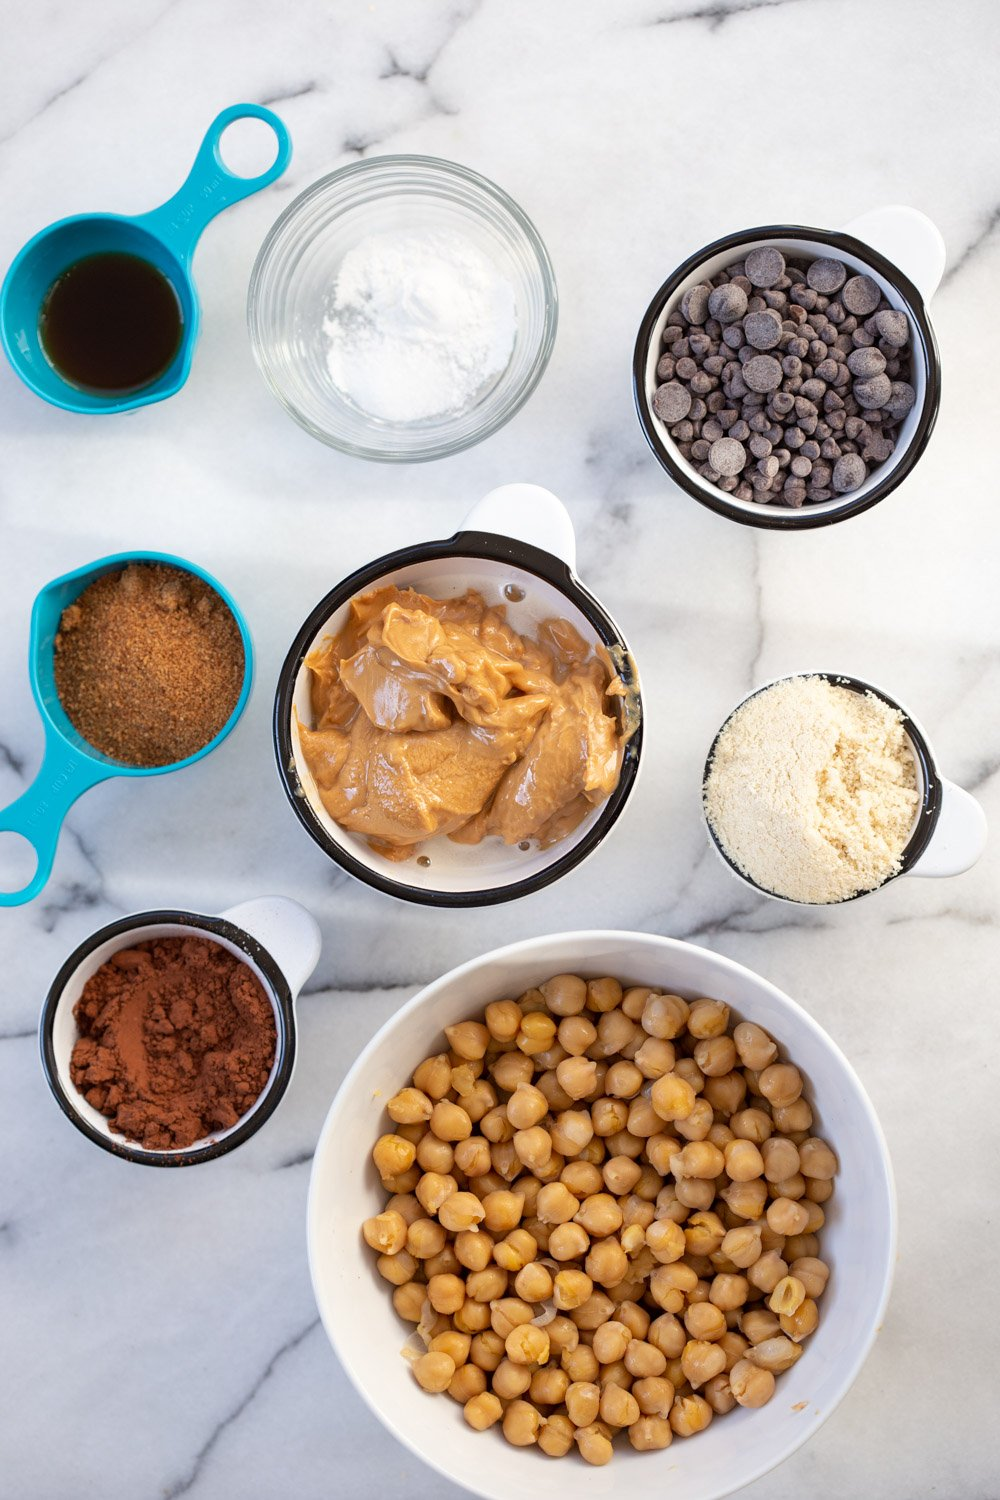 Ingredients for our Vegan Chickpea Brownies in Bowls